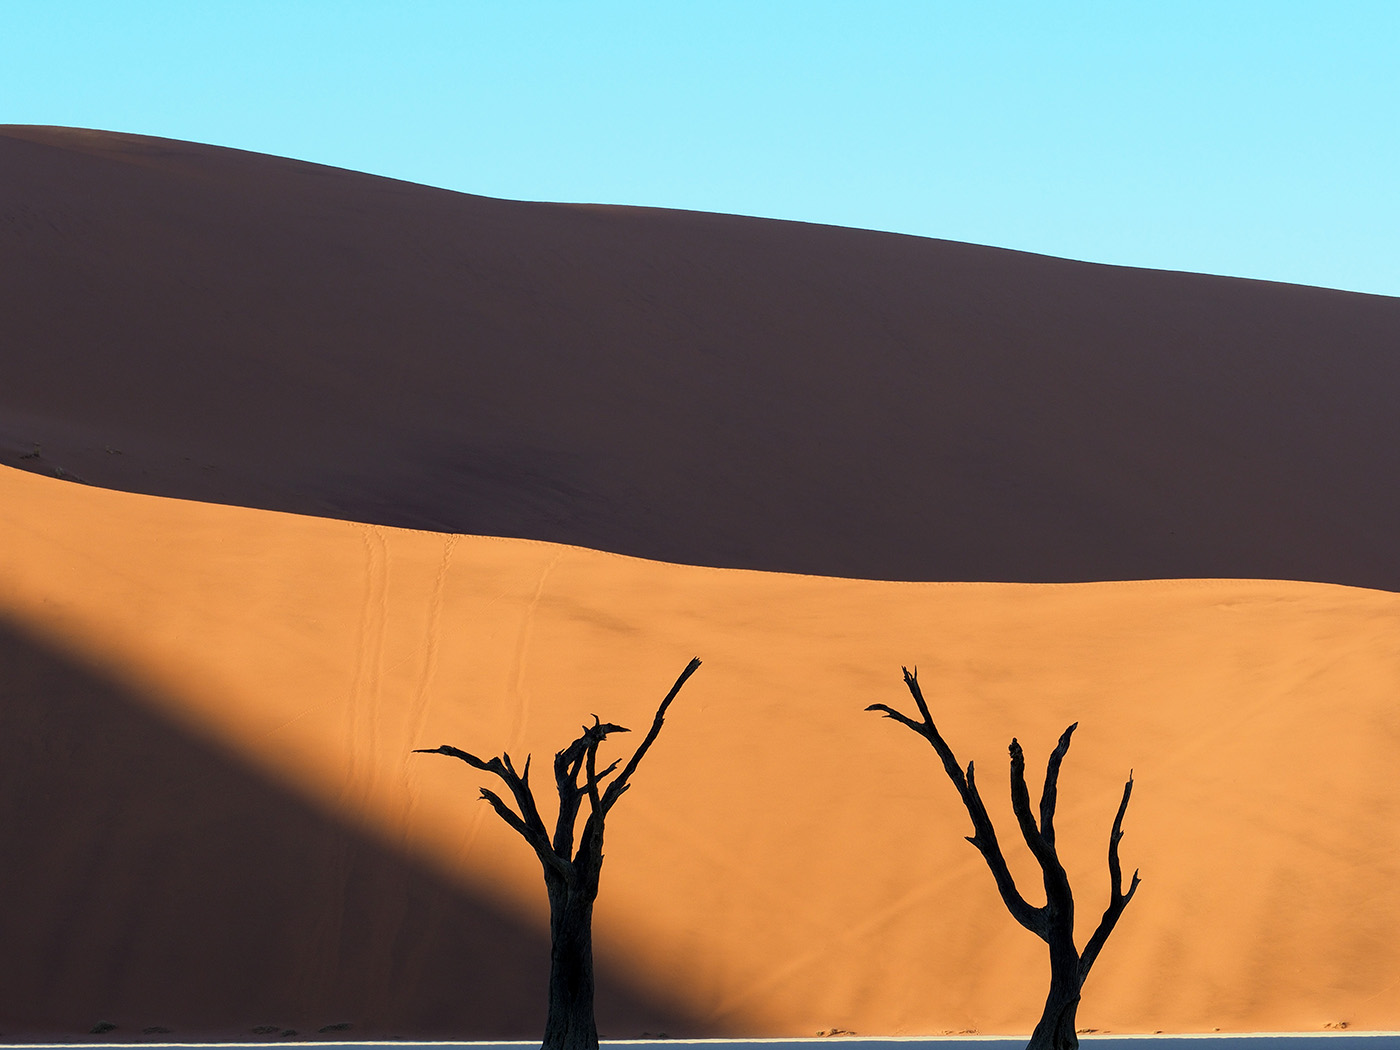 © Ranjan Ramchandani, The Shadows at Dead Vlei'